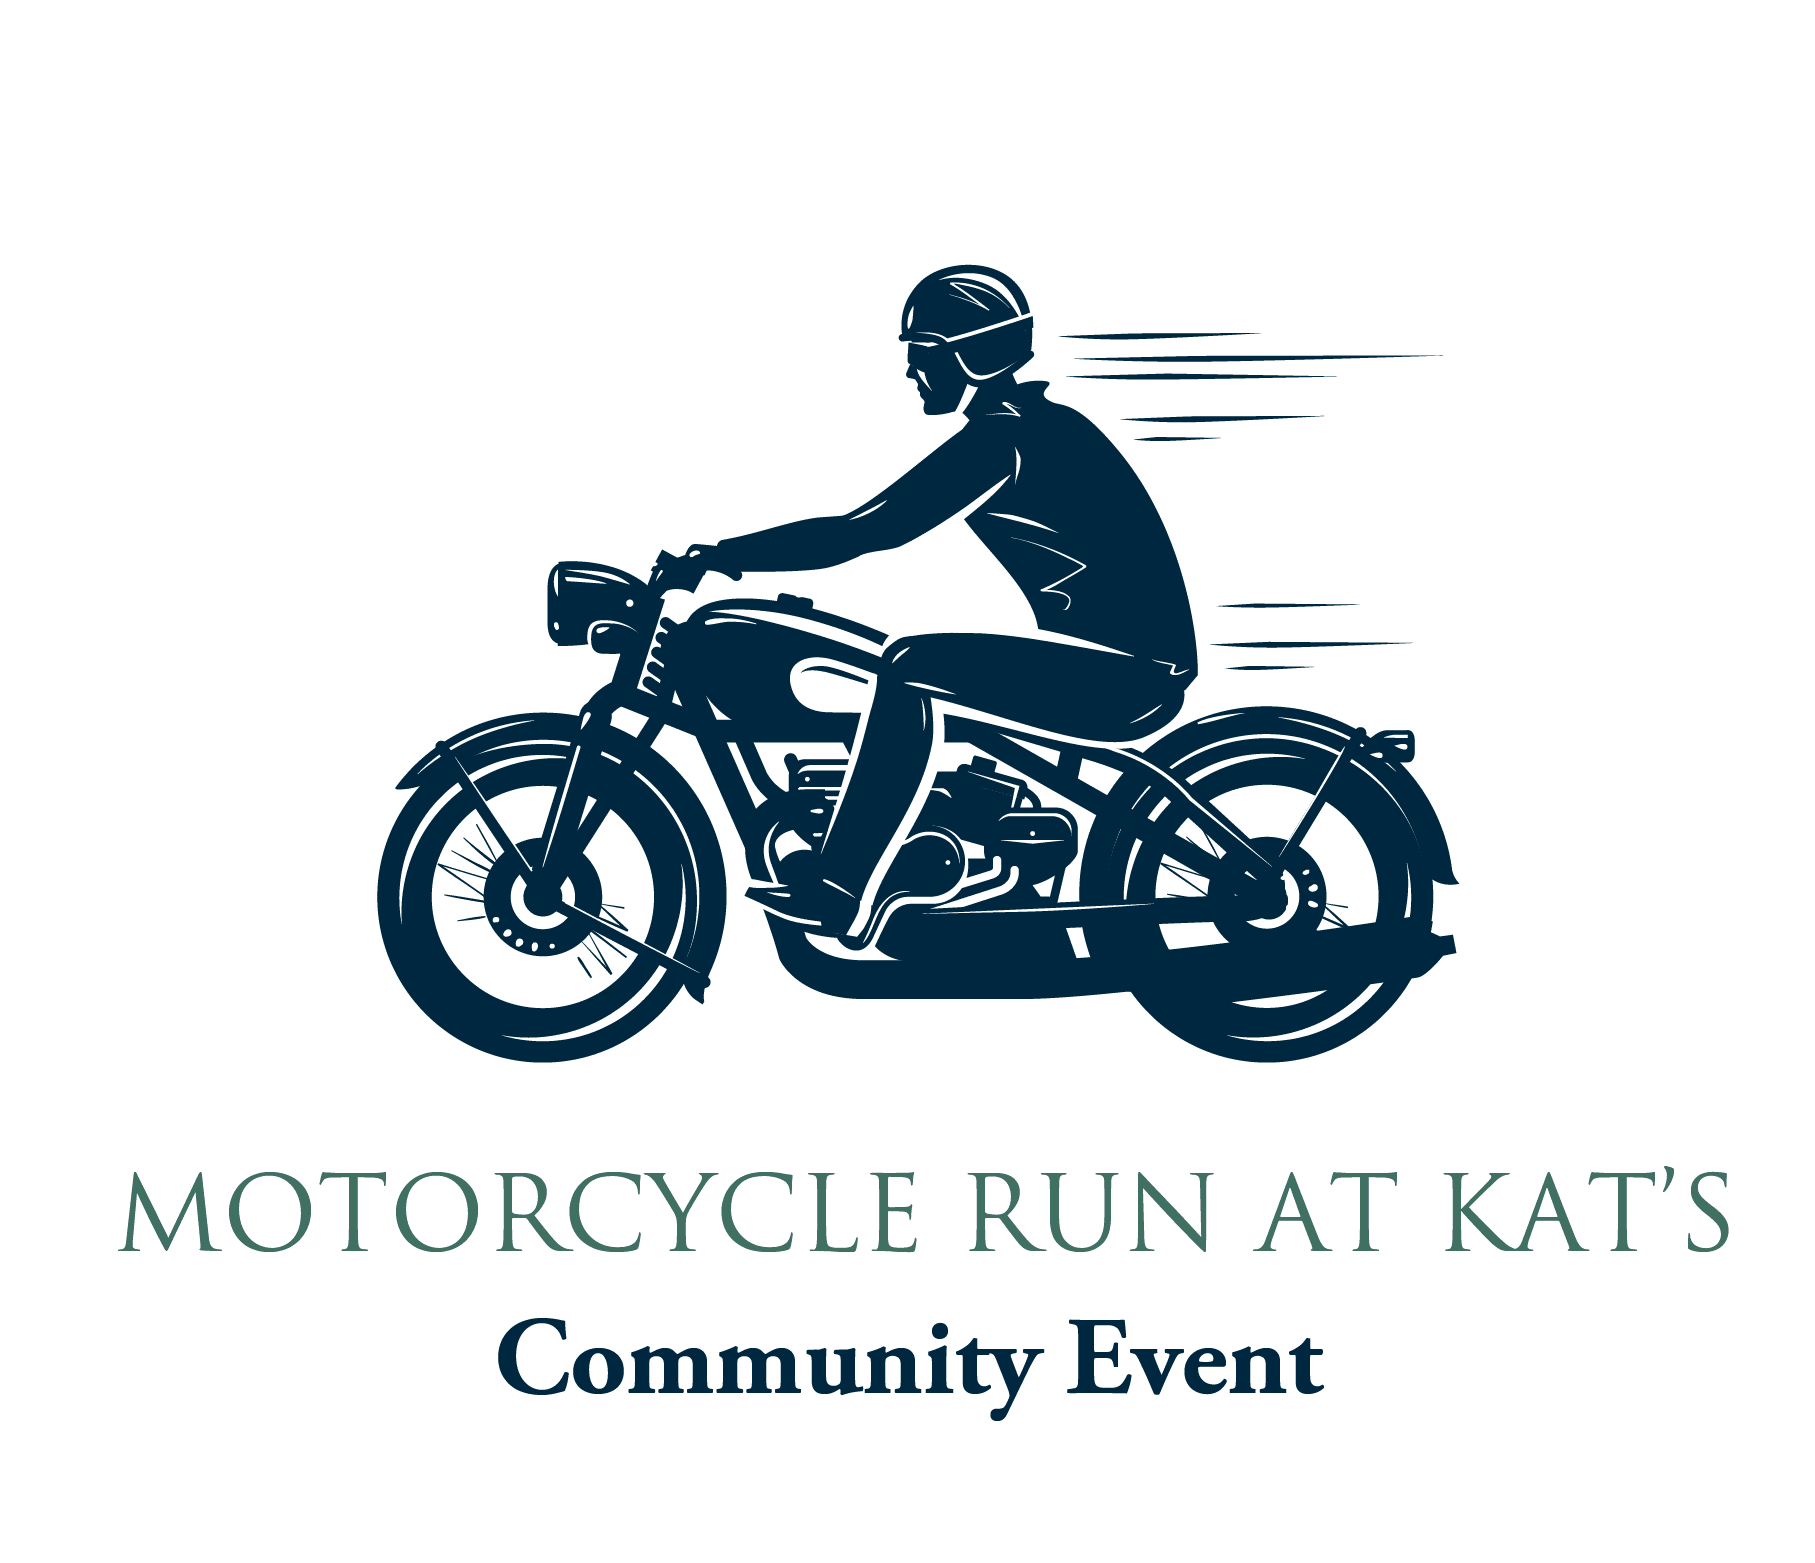 Motorcycle Run graphic with line drawing or motorcycle and rider